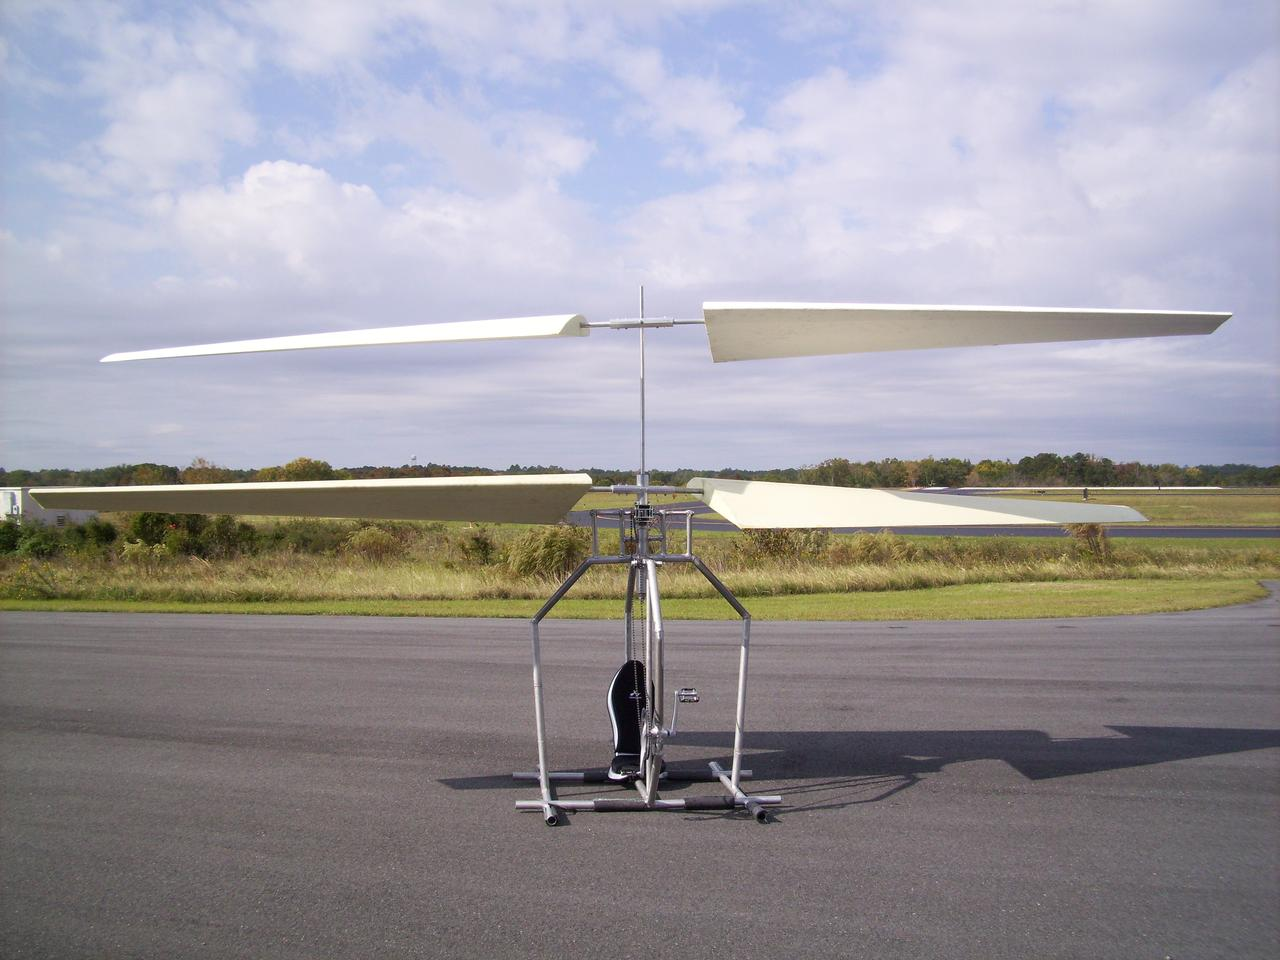 The aim of the project is to develop a small coaxial human-powered helicopter that has the potential for reliable and practical recreational use